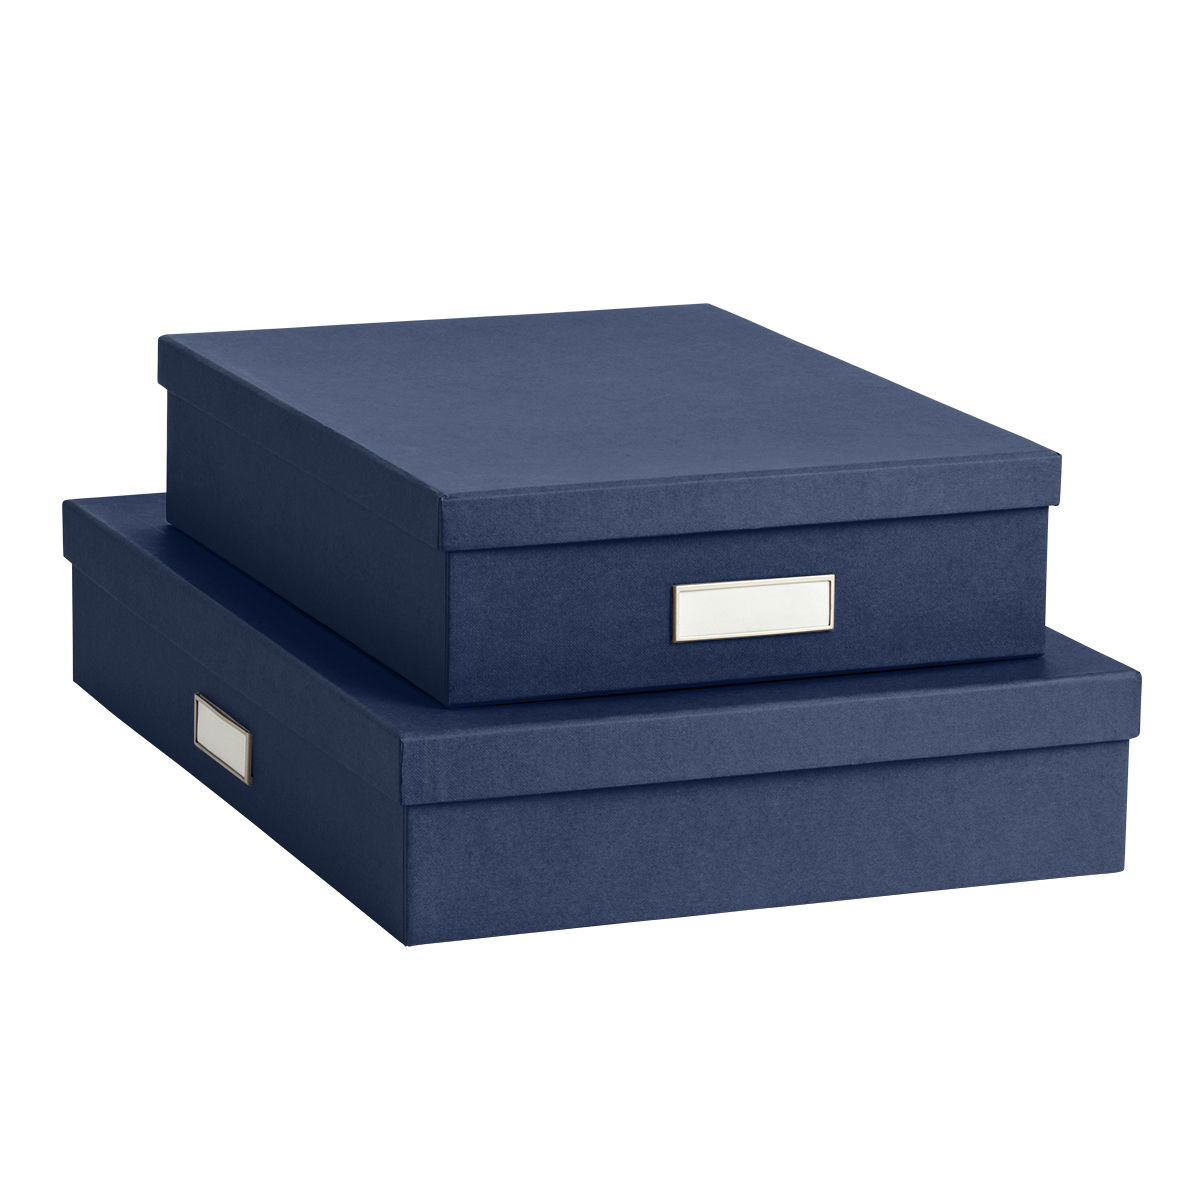 Bon Bigso Navy Stockholm Office Storage Boxes